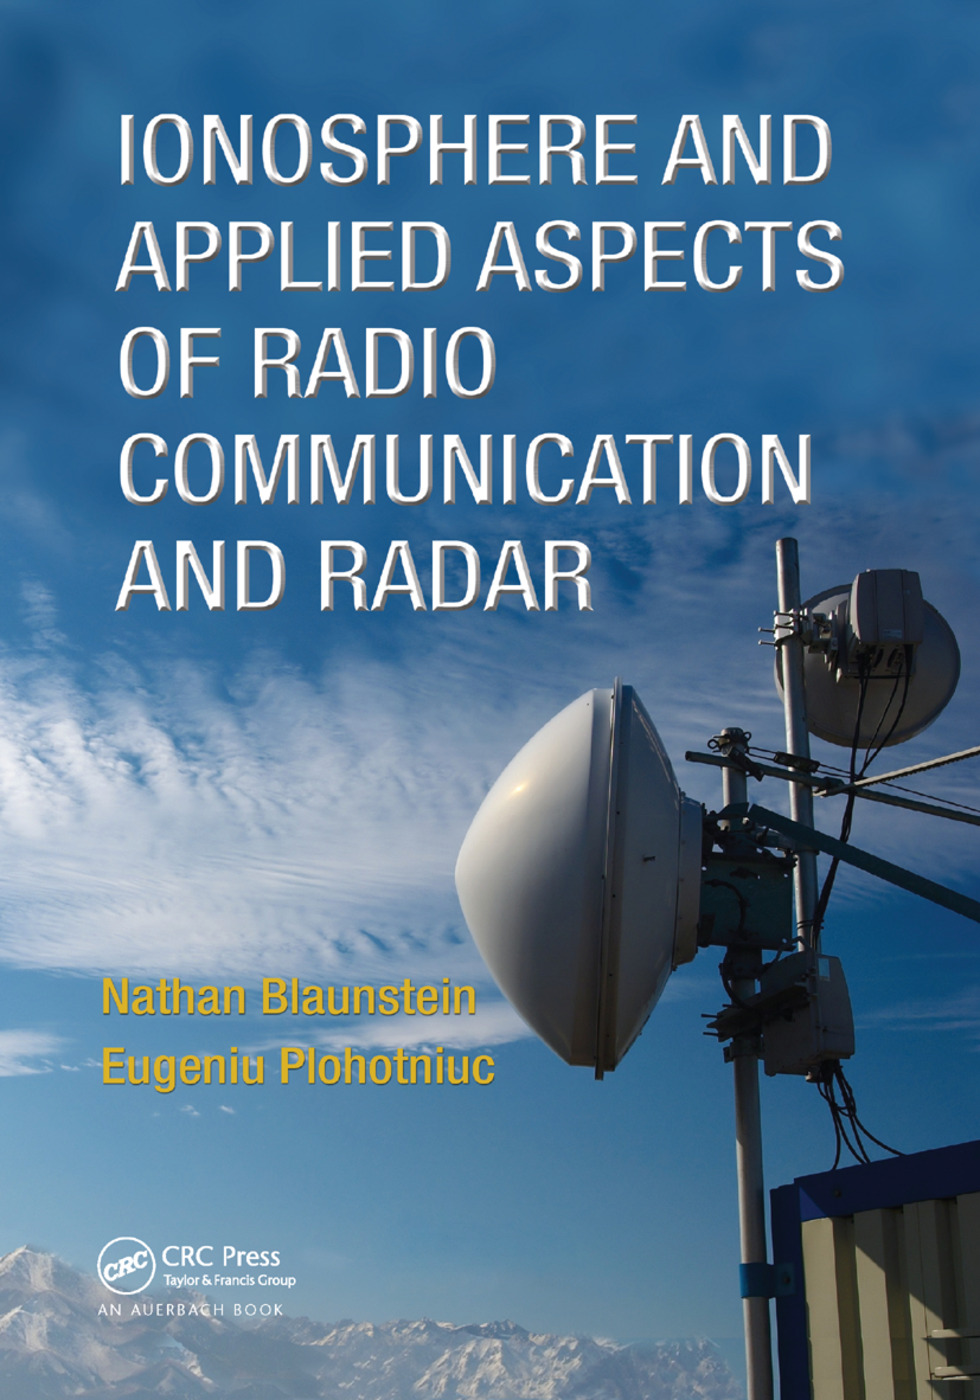 Ionosphere and Applied Aspects of Radio Communication and Radar: 1st Edition (Paperback) book cover